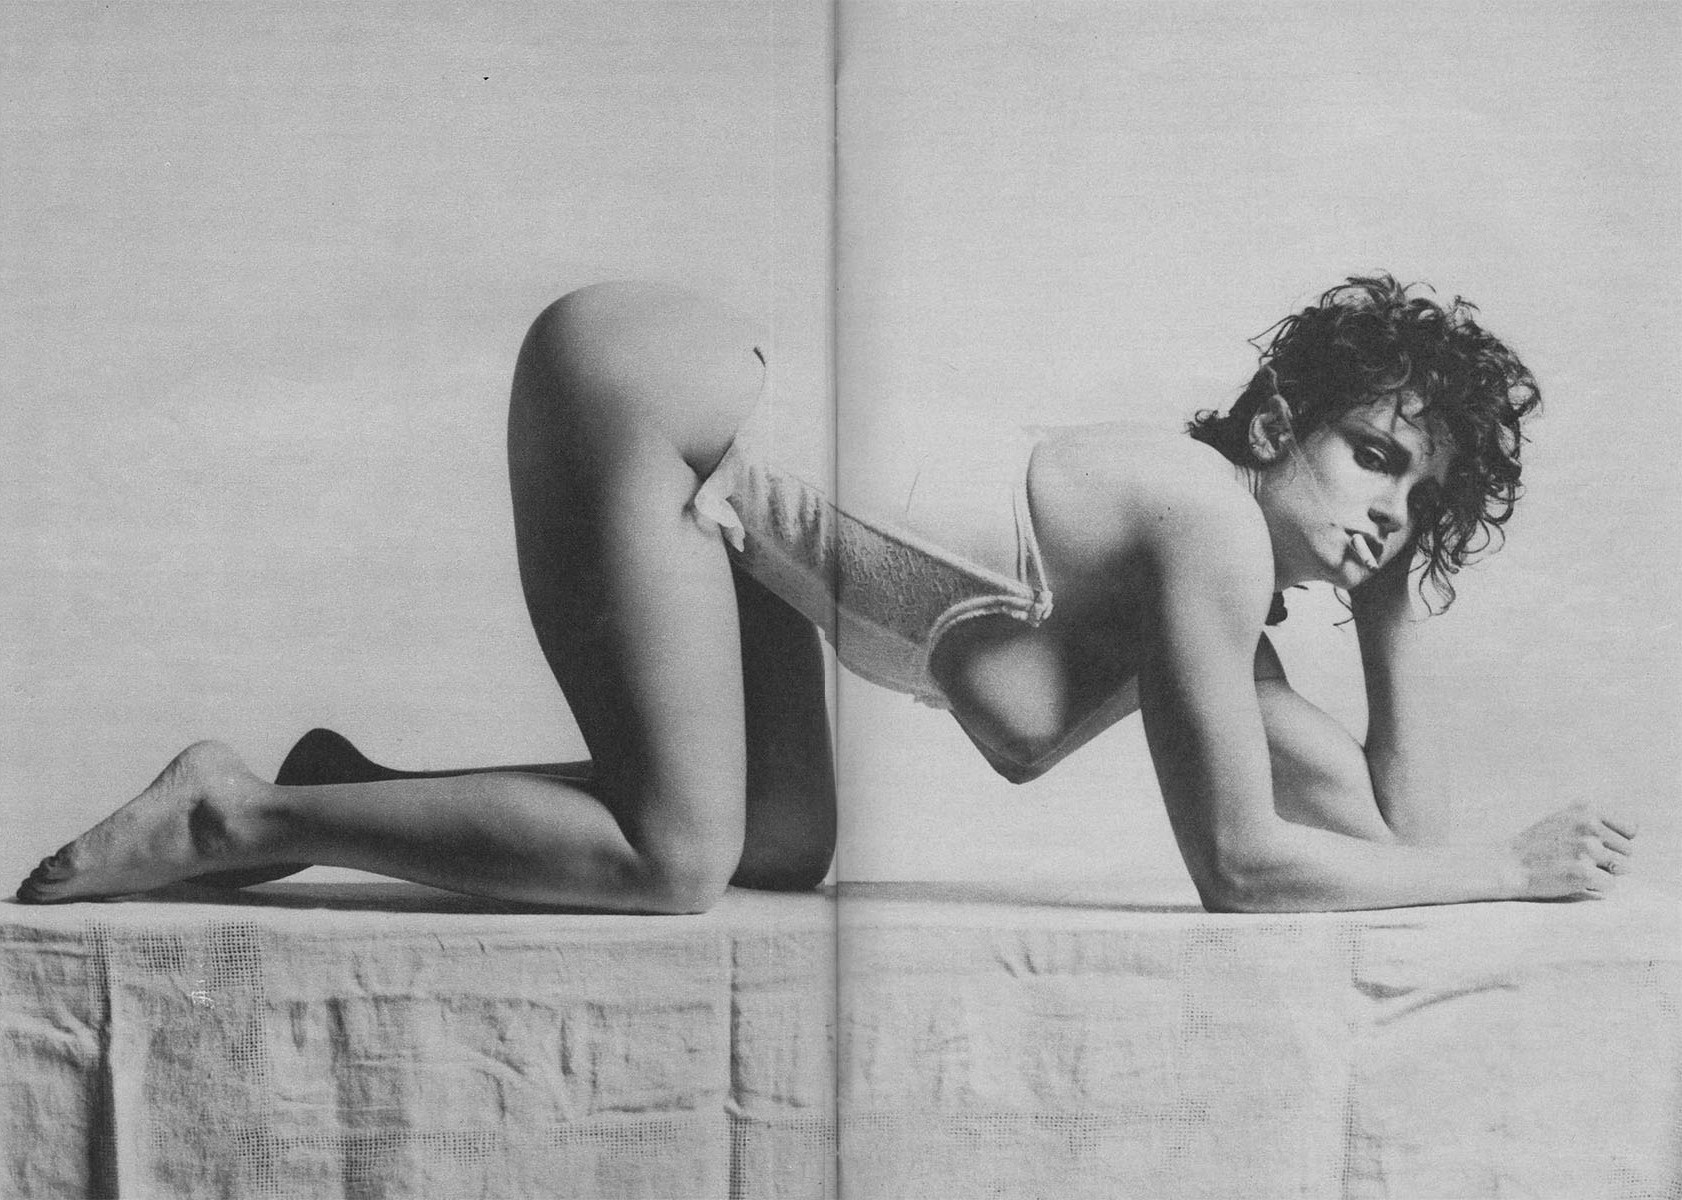 lisa lyon 1983 photography robert mapplethorpe max april 1985